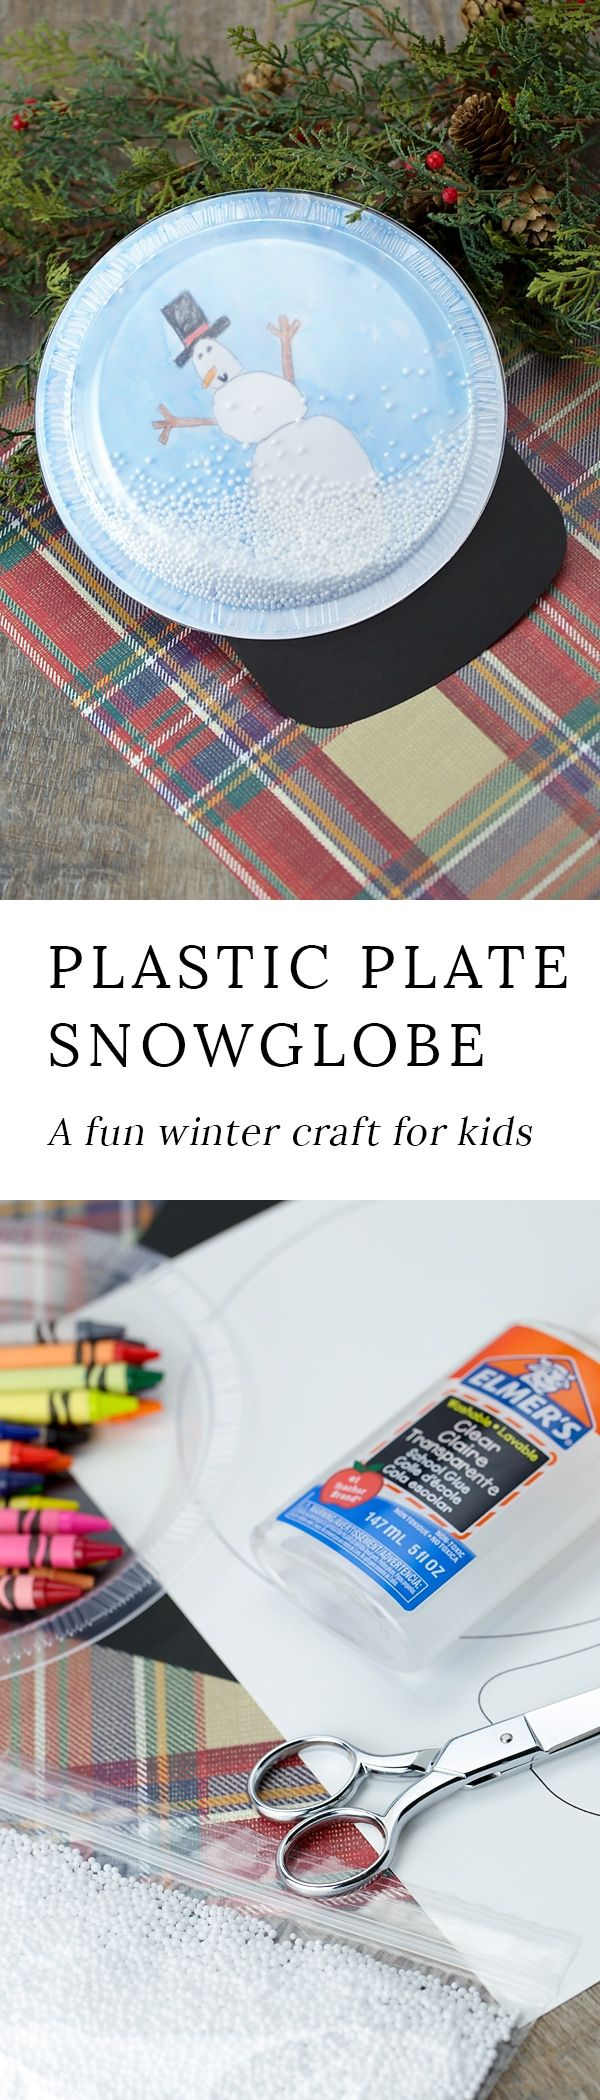 Kids of all ages will enjoy making a sweet Snowglobe Craft to gift or keep this holiday season. They are easy, fun, and perfect for home or school. #wintercrafts #snowglobecraft #kidscrafts via @https://www.pinterest.com/fireflymudpie/